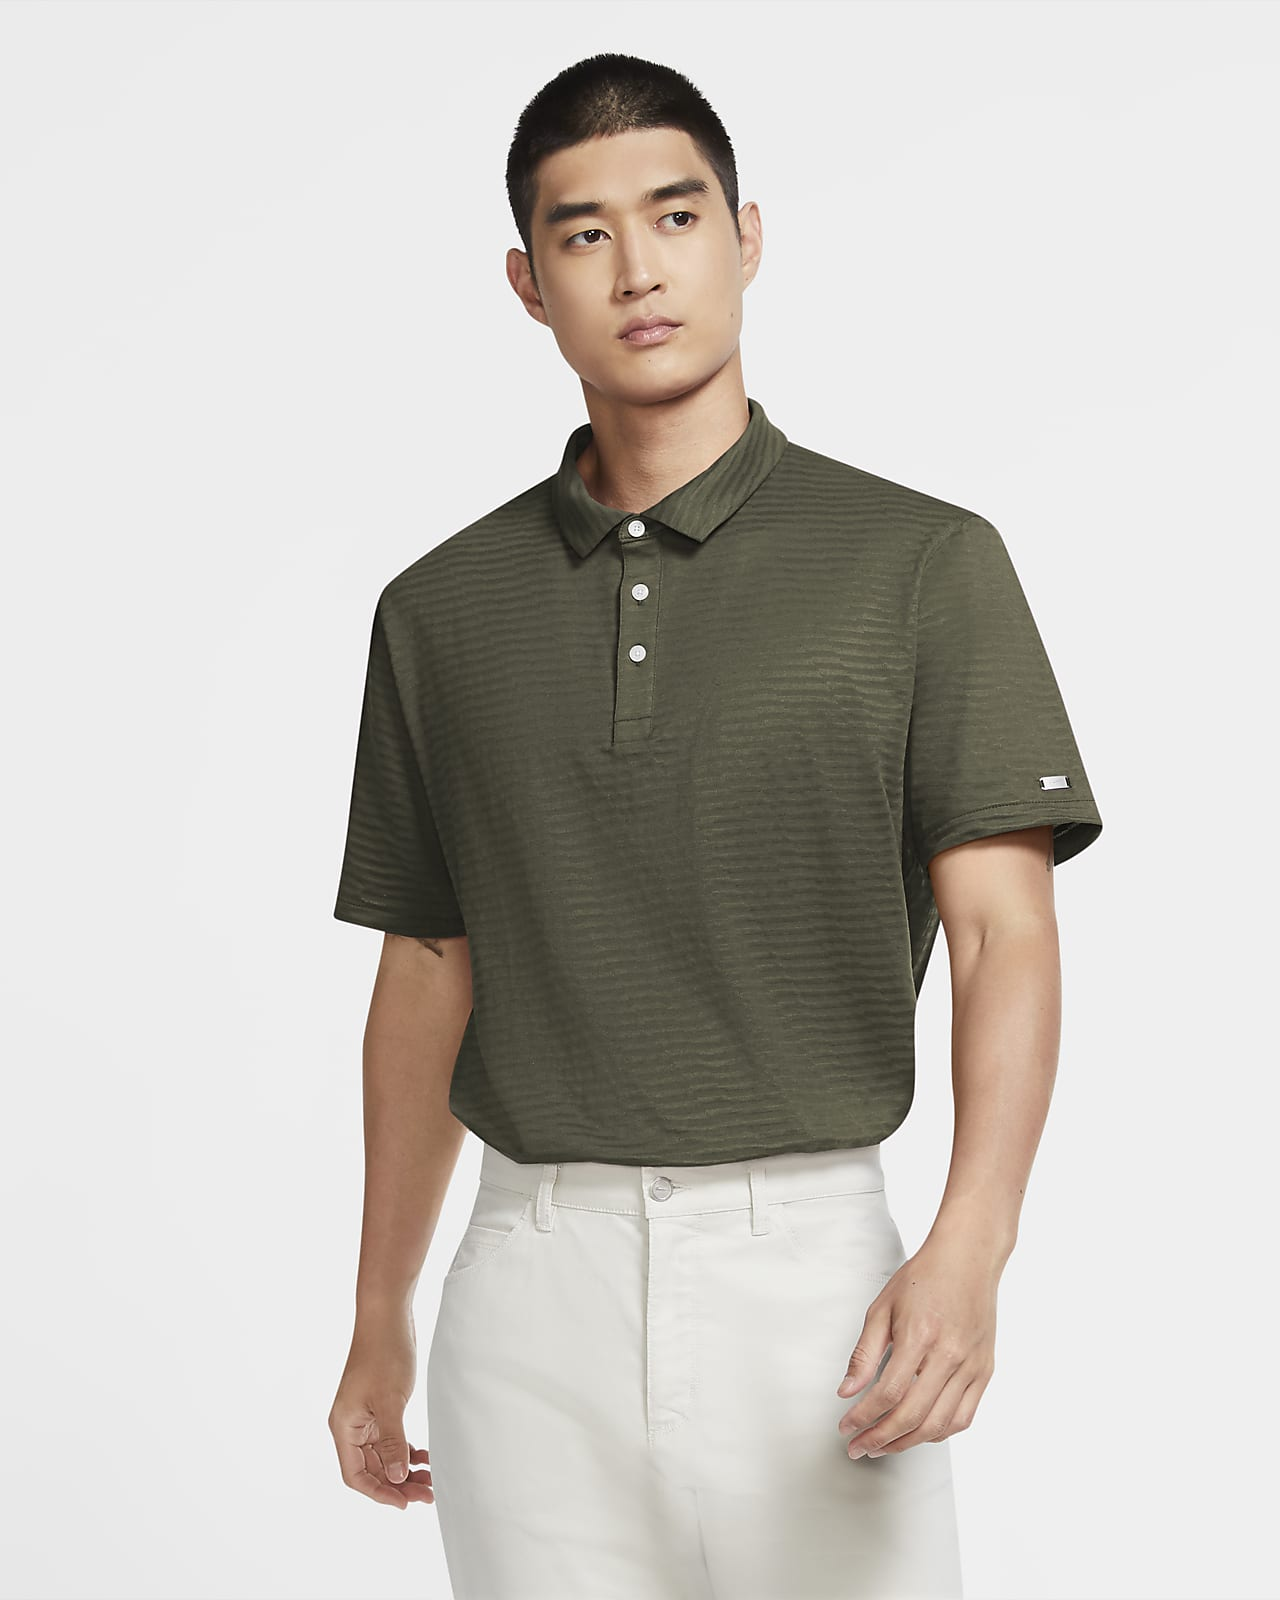 Nike Dri-FIT Player Men's Golf Polo